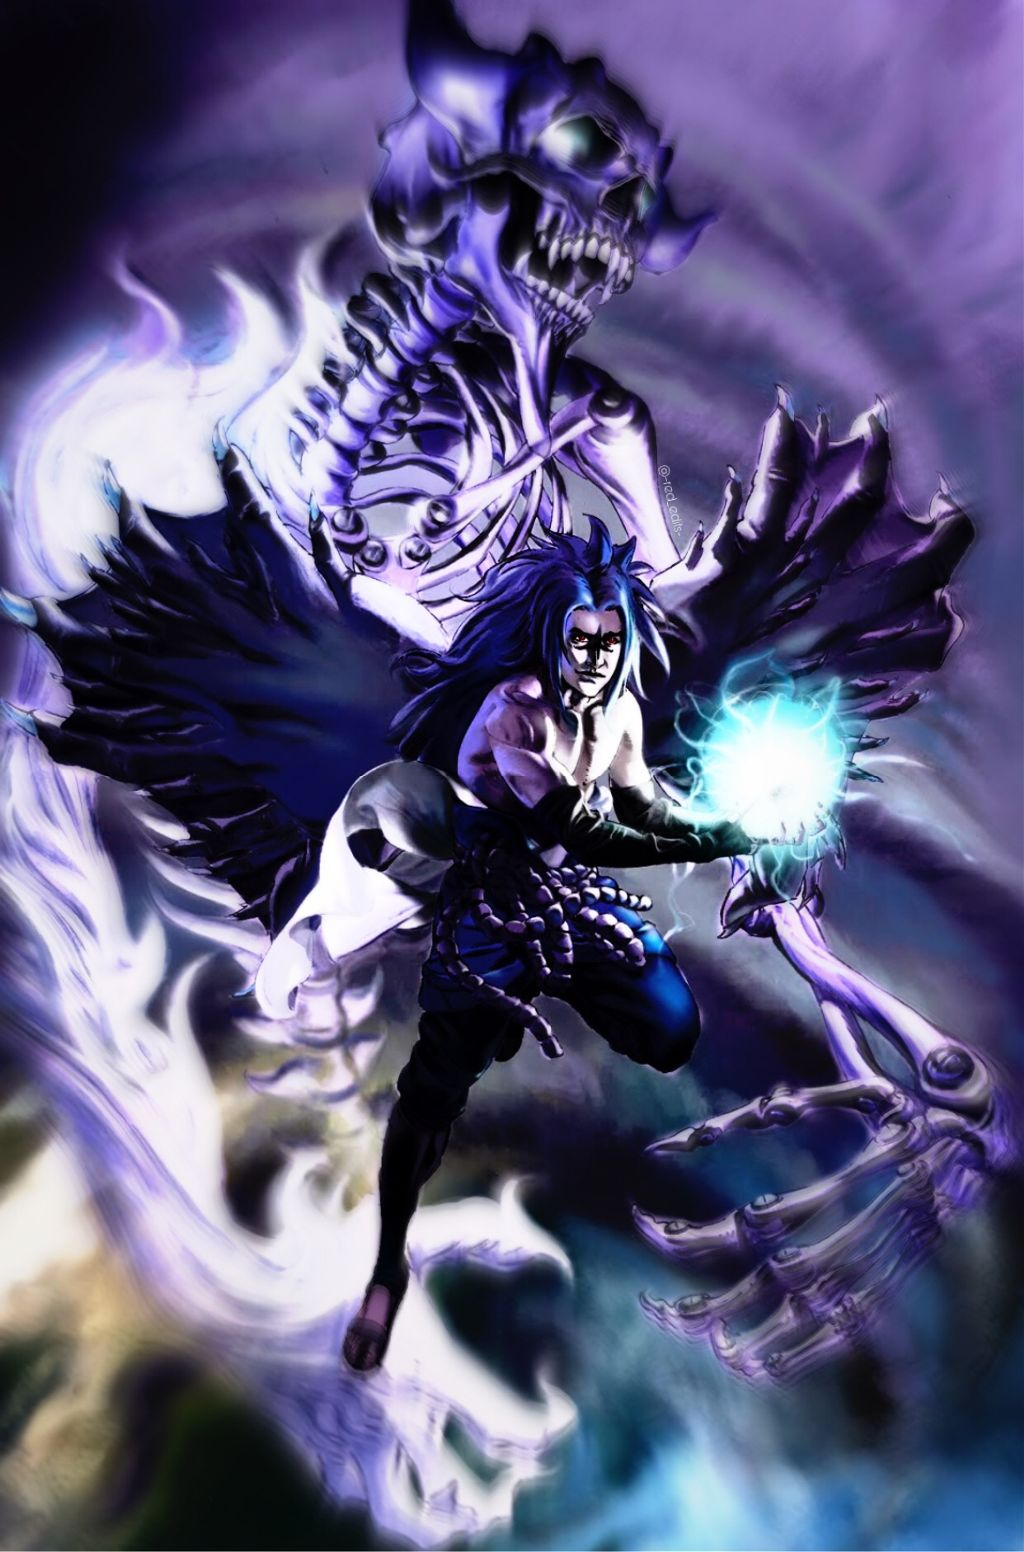 Sasuke Sasukeuchiha Susanoo Purple Skeleton Wings Curse